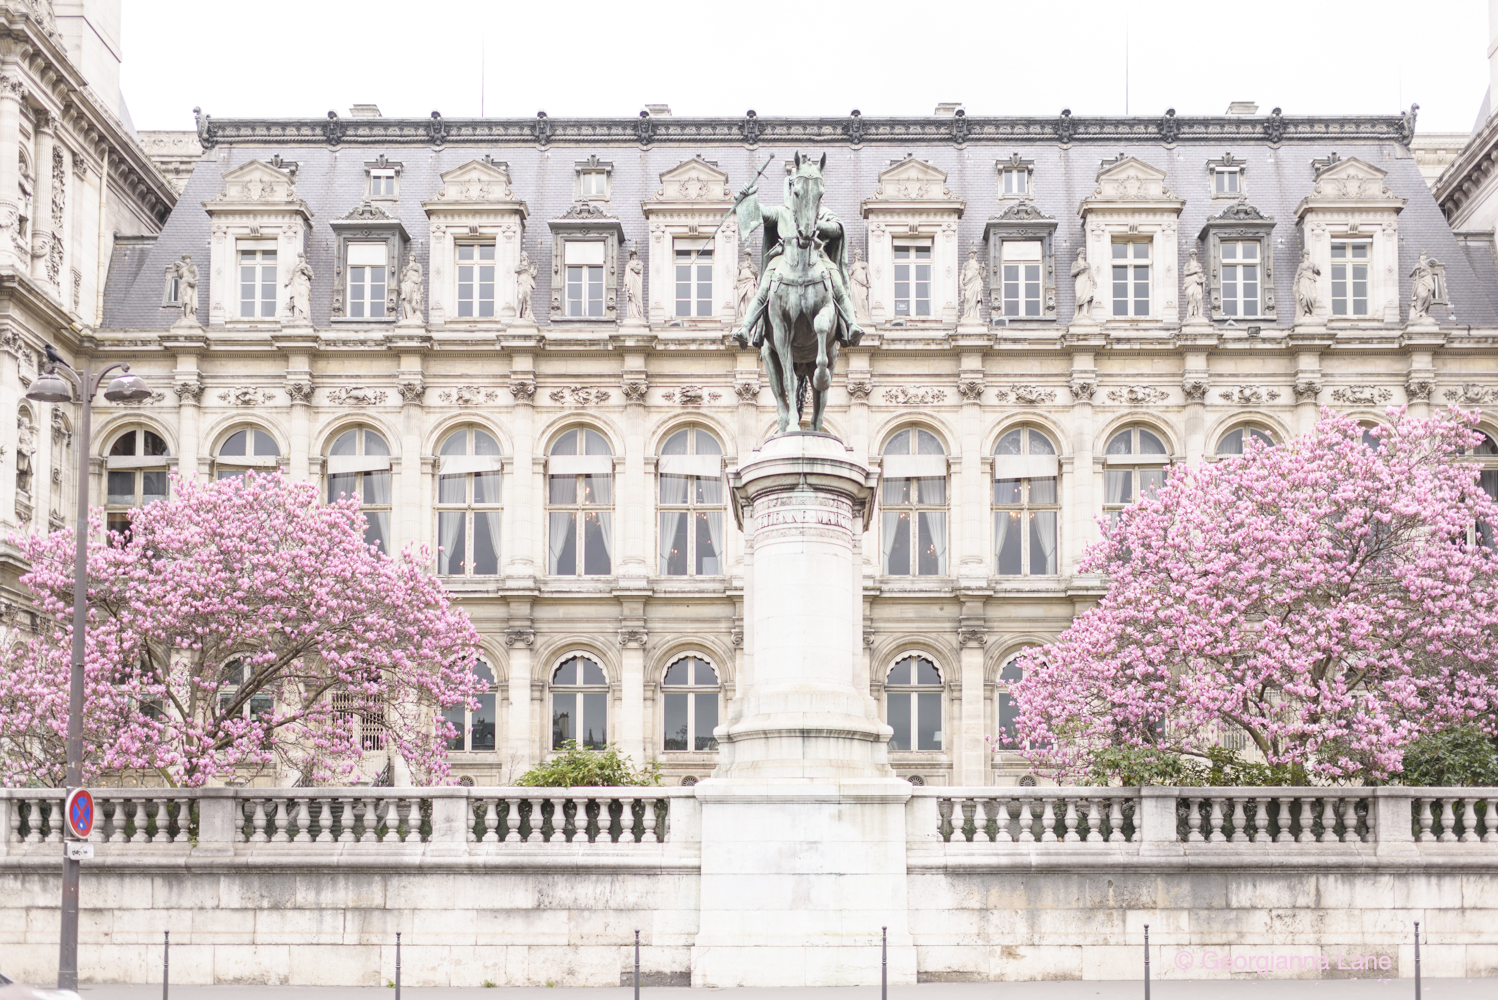 Hôtel de Ville, Paris, in spring, by Georgianna Lane